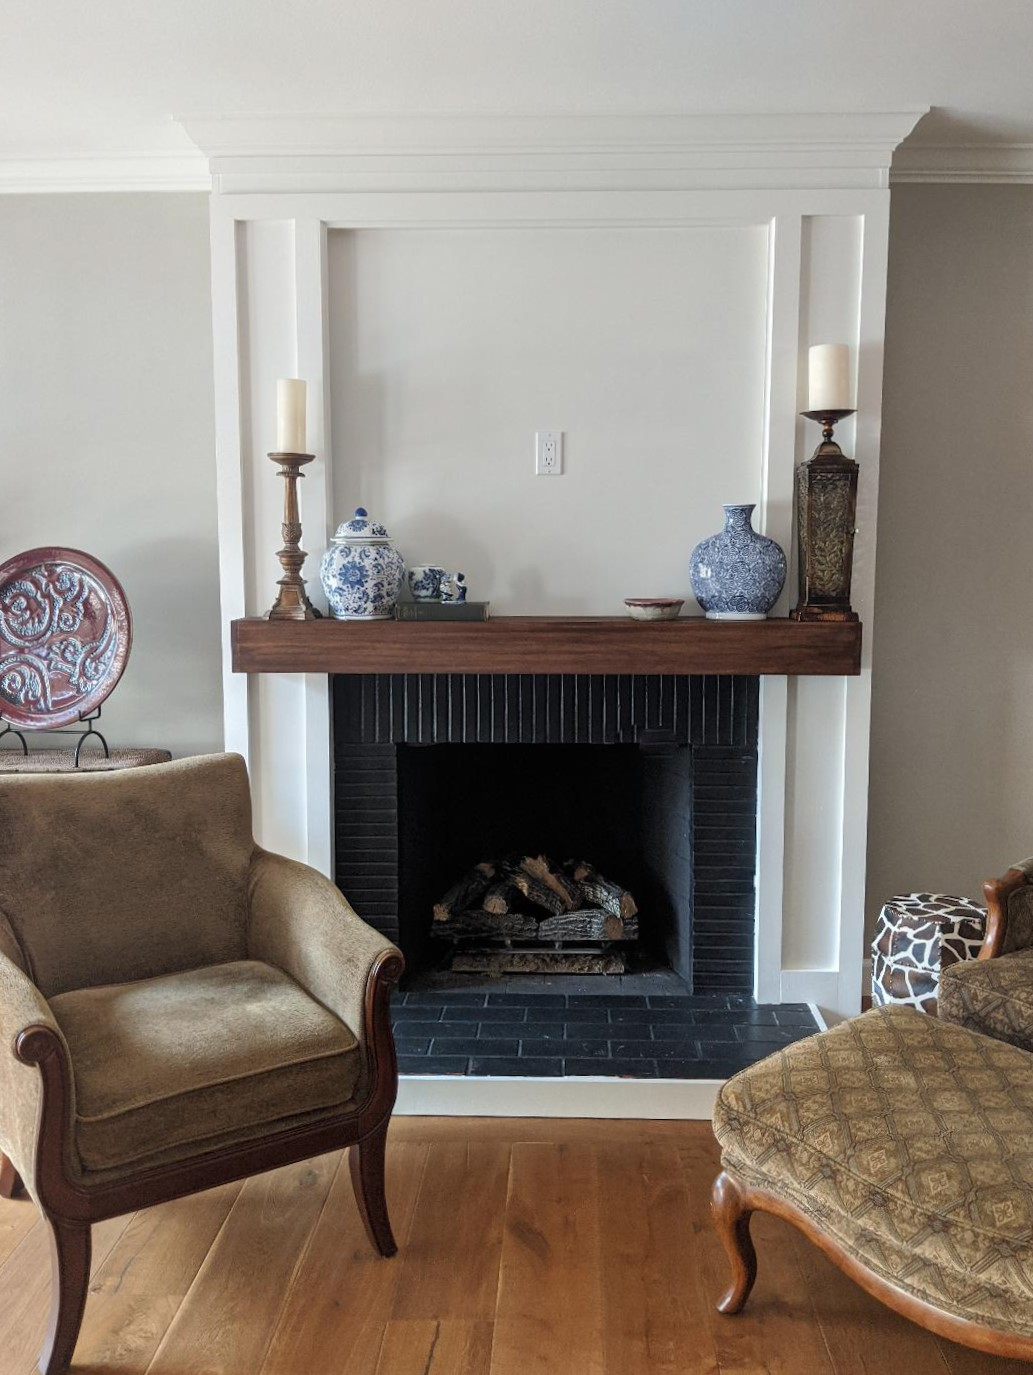 ireplace makeover black white modern farmhouse transitional brick wood mantel hearth surround